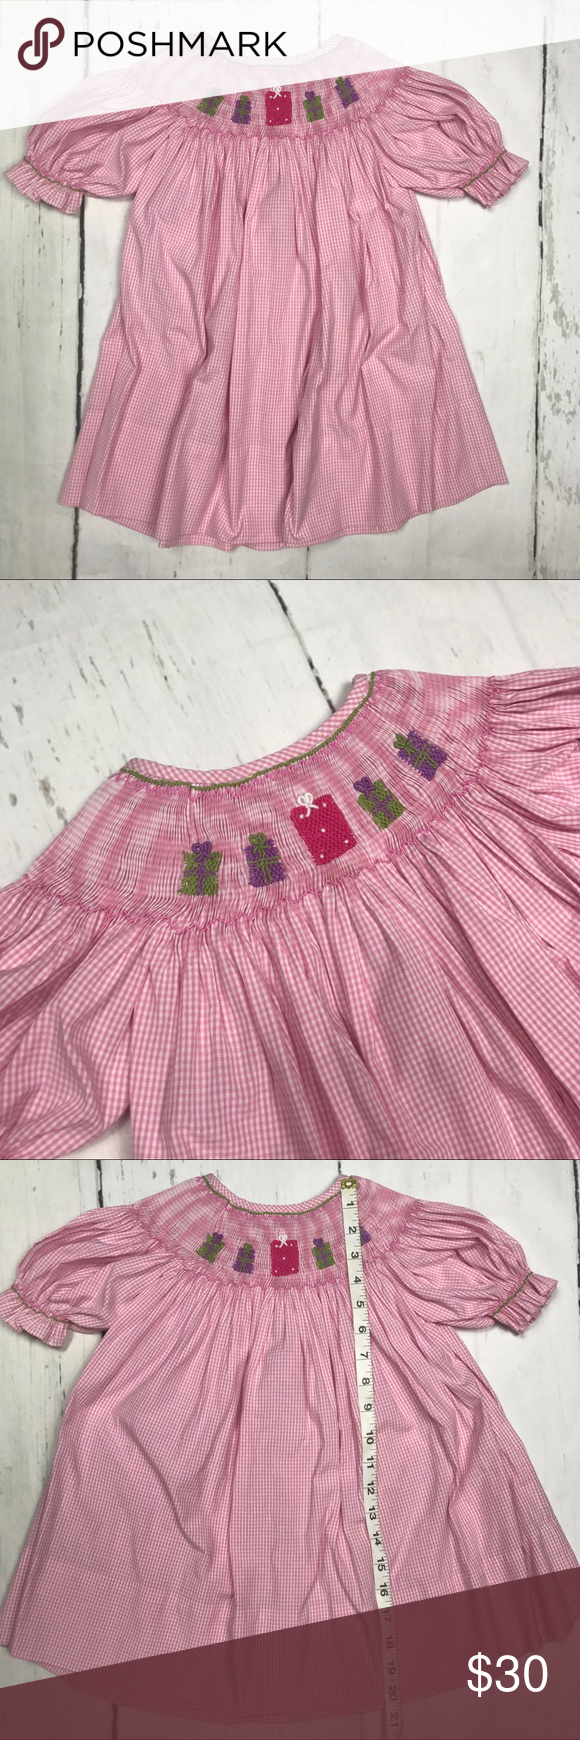 Lolly wolly doodle girls t birthday dress pink my posh closet